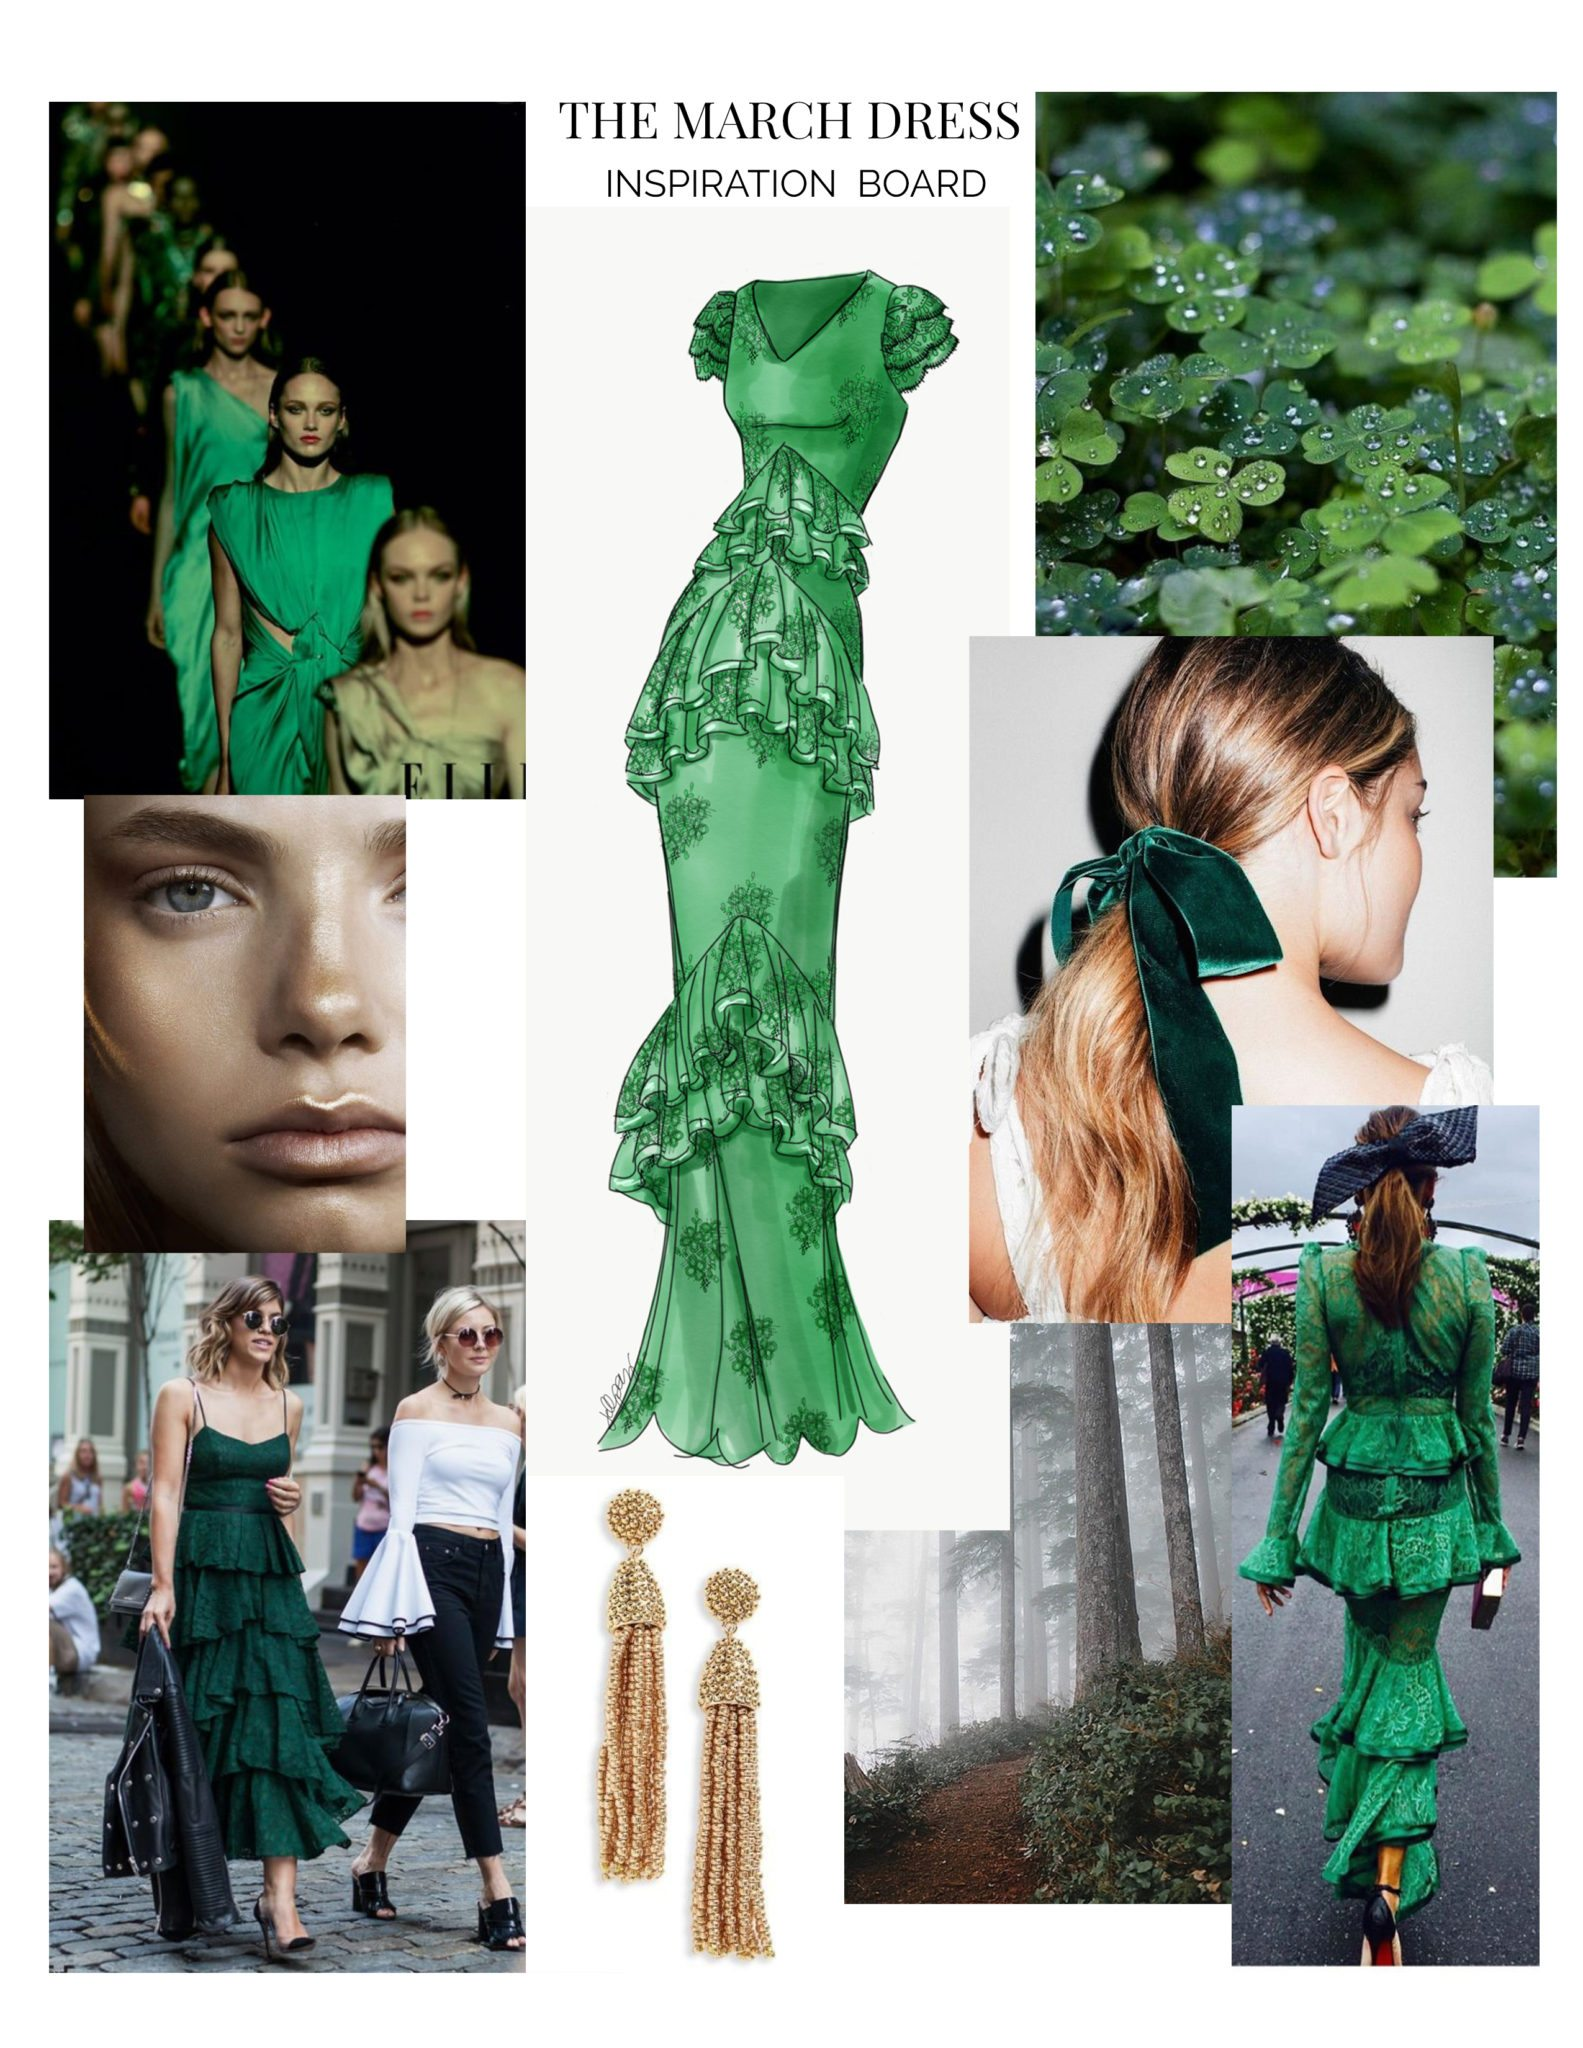 The March Dress Inspiration Board: The Monthly Dress Series